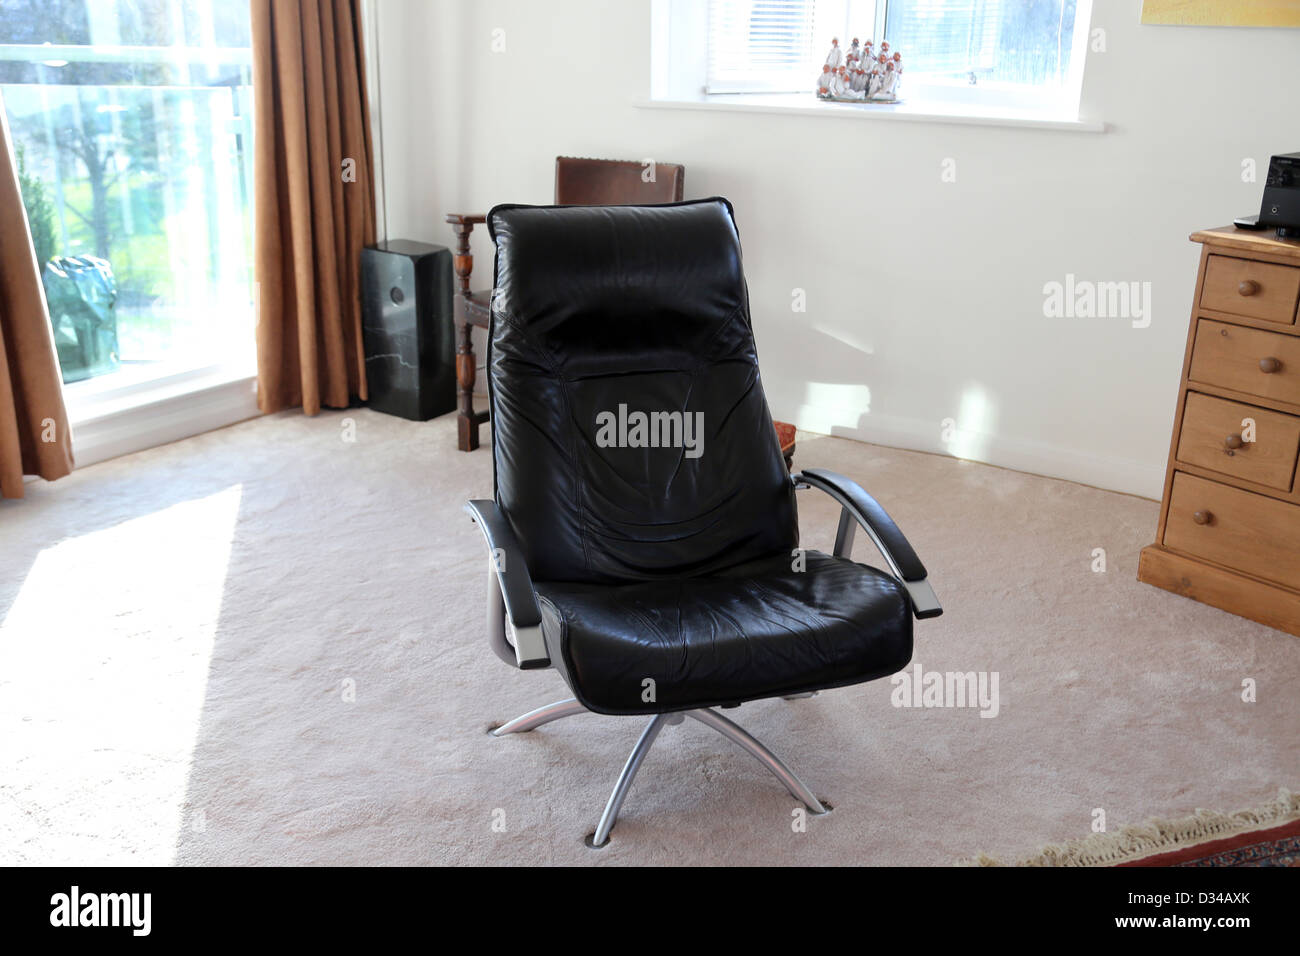 Groovy Leather Chair In Open Plan Living Room Cheltenham Pdpeps Interior Chair Design Pdpepsorg